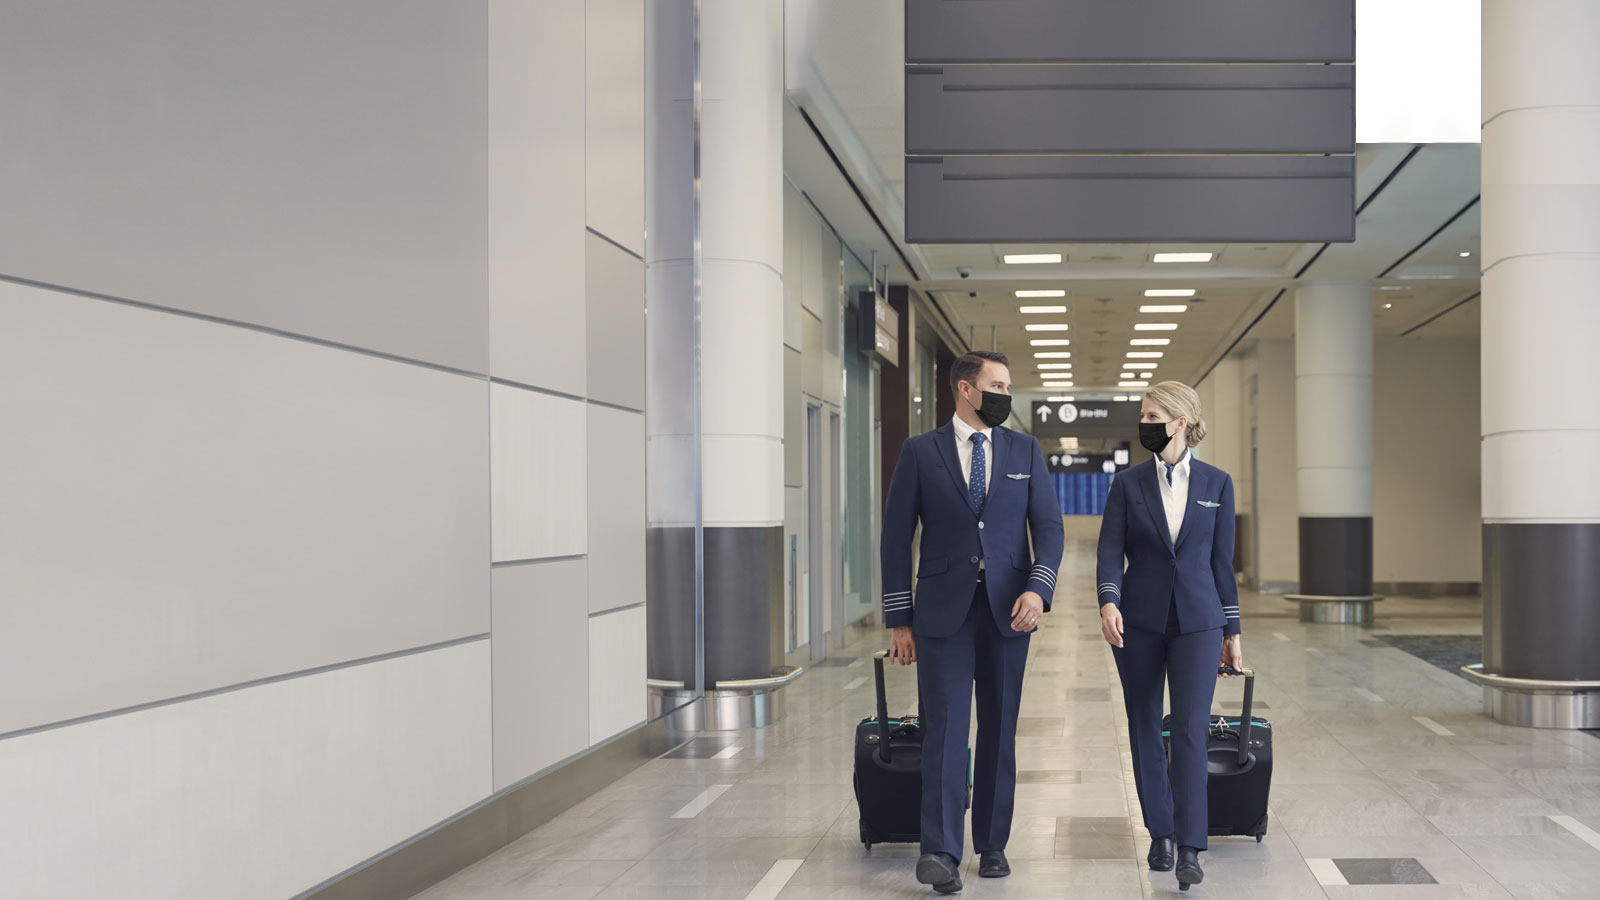 Masked pilots walking through airport.